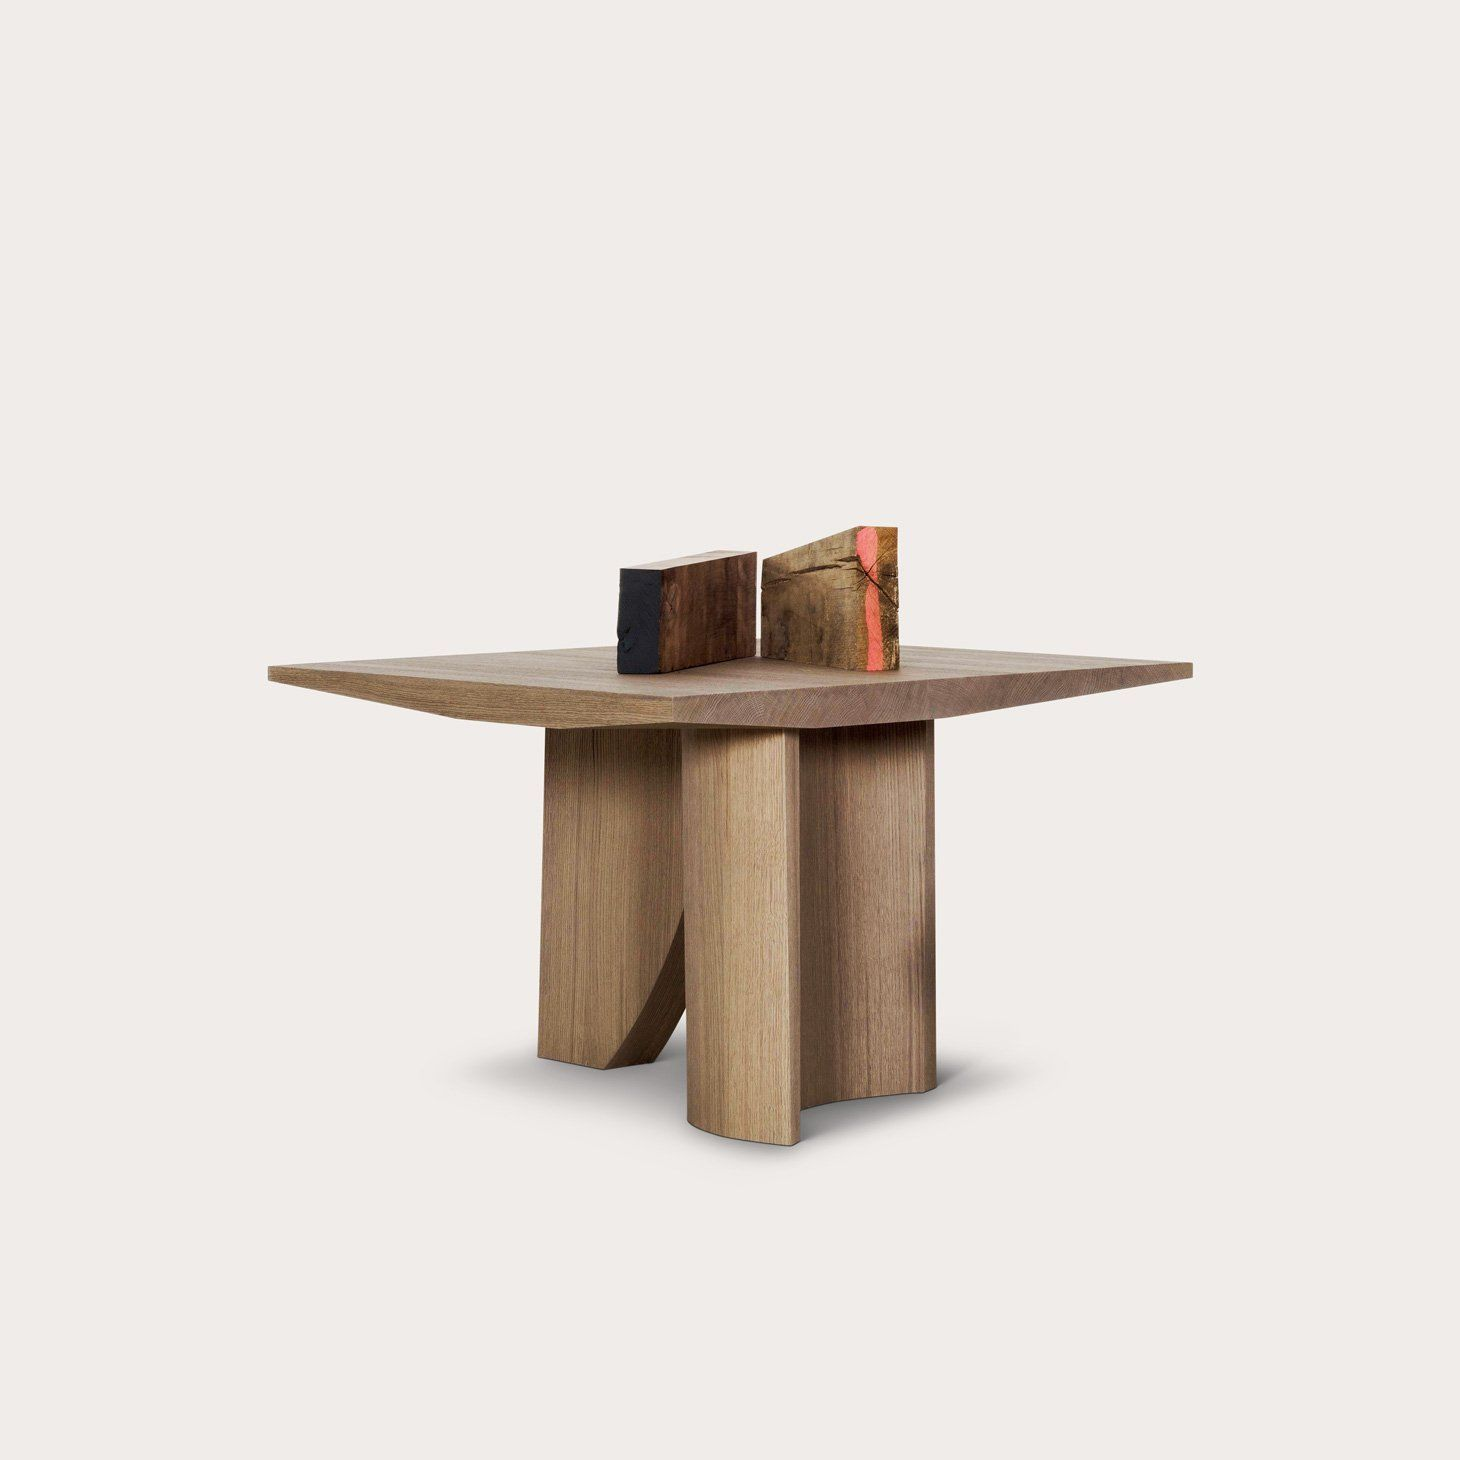 Teo Lounge Table Tables Christophe Delcourt Designer Furniture Sku 008 230 10464 Table Furniture Low Coffee Table [ 1460 x 1460 Pixel ]